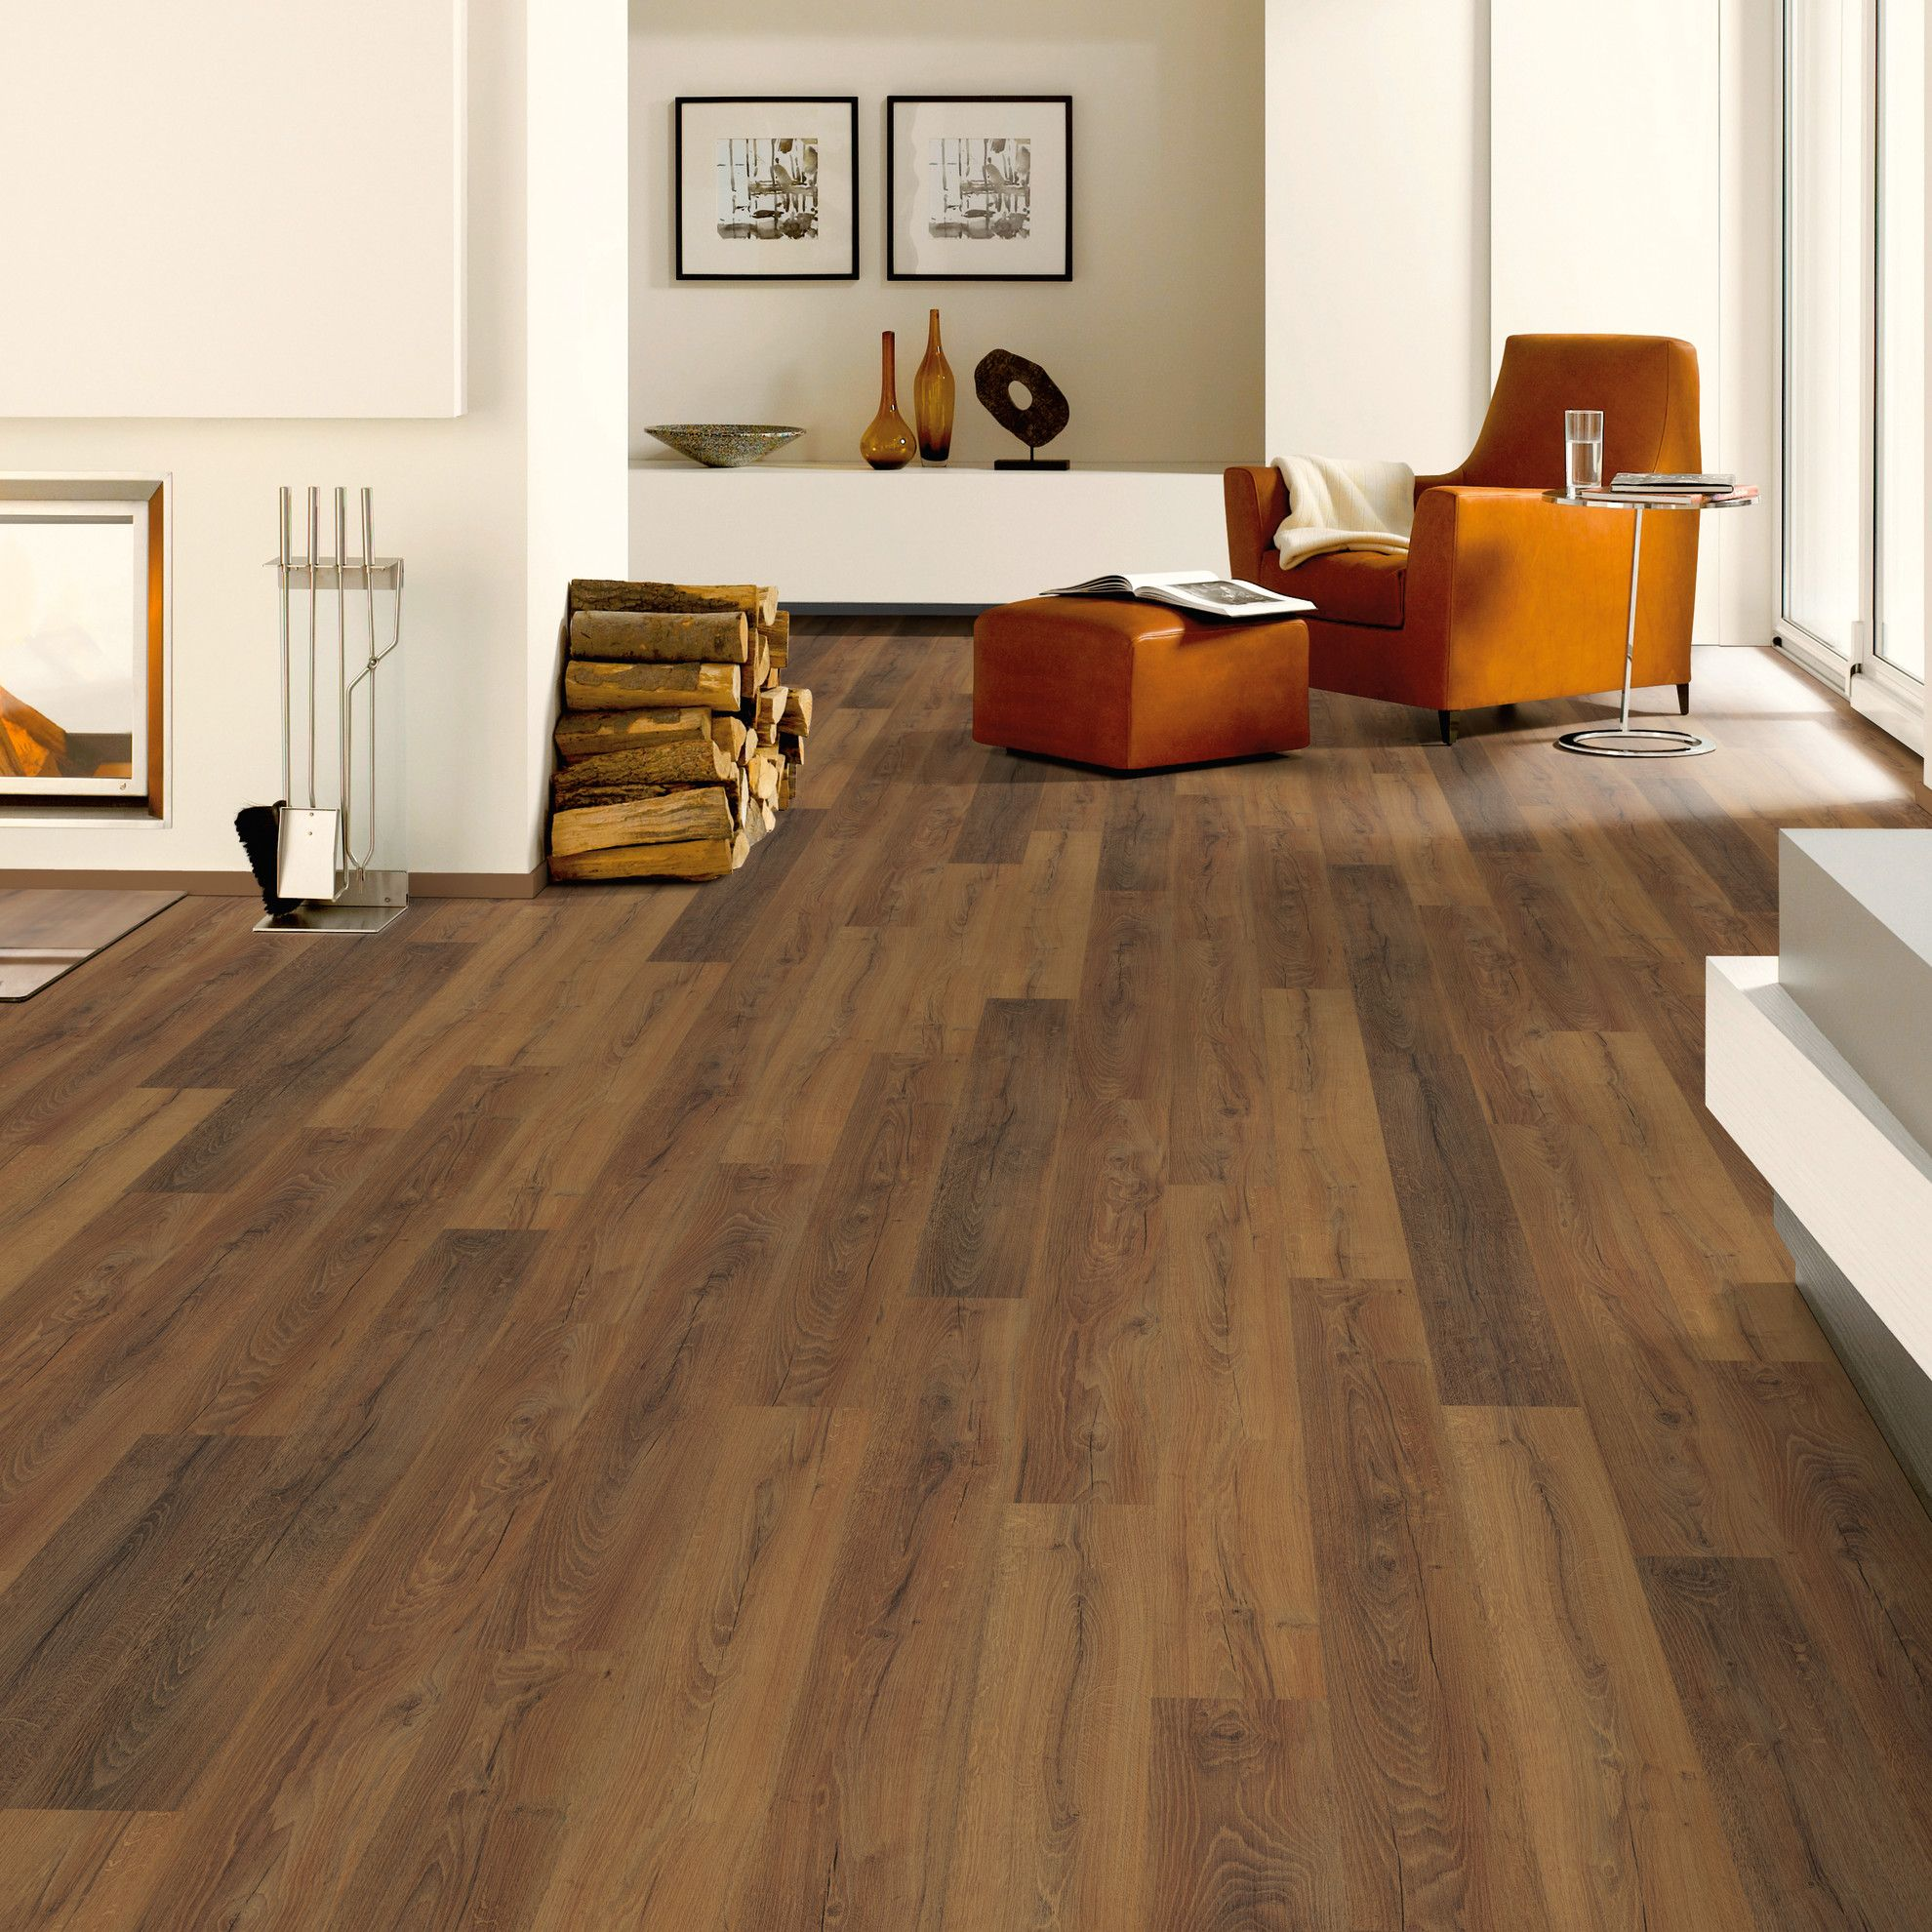 Pavimento laminato multitono scuro 8 mm interiors oak for Parquet flottante leroy merlin prezzi